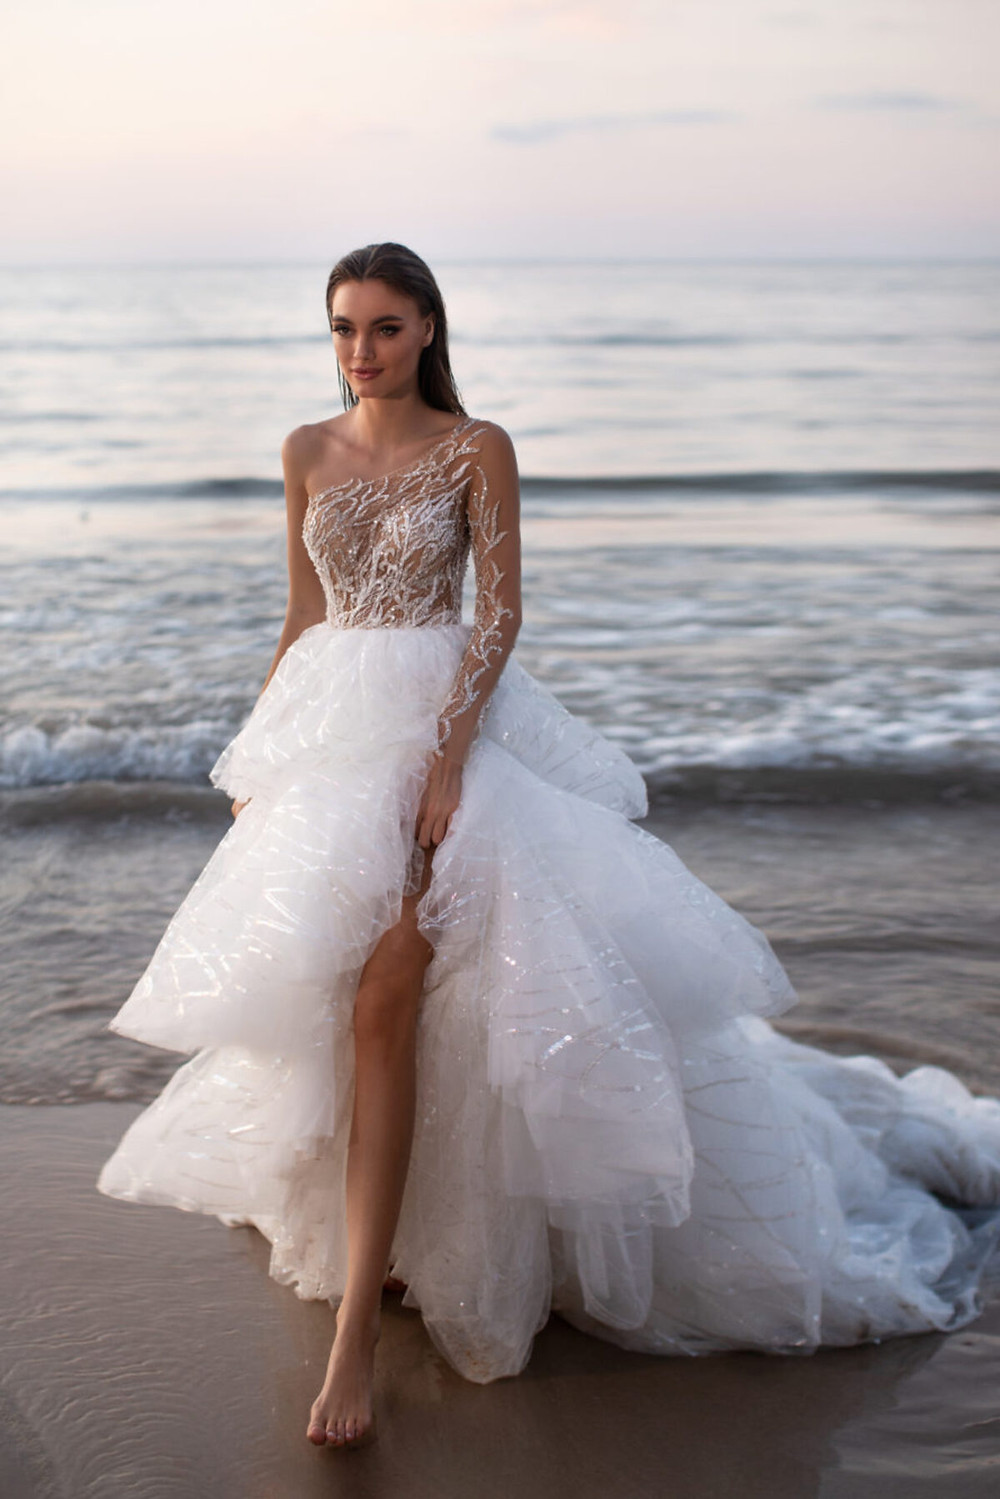 A one shoulder, ball gown wedding dress with a tiered skirt and sparkles